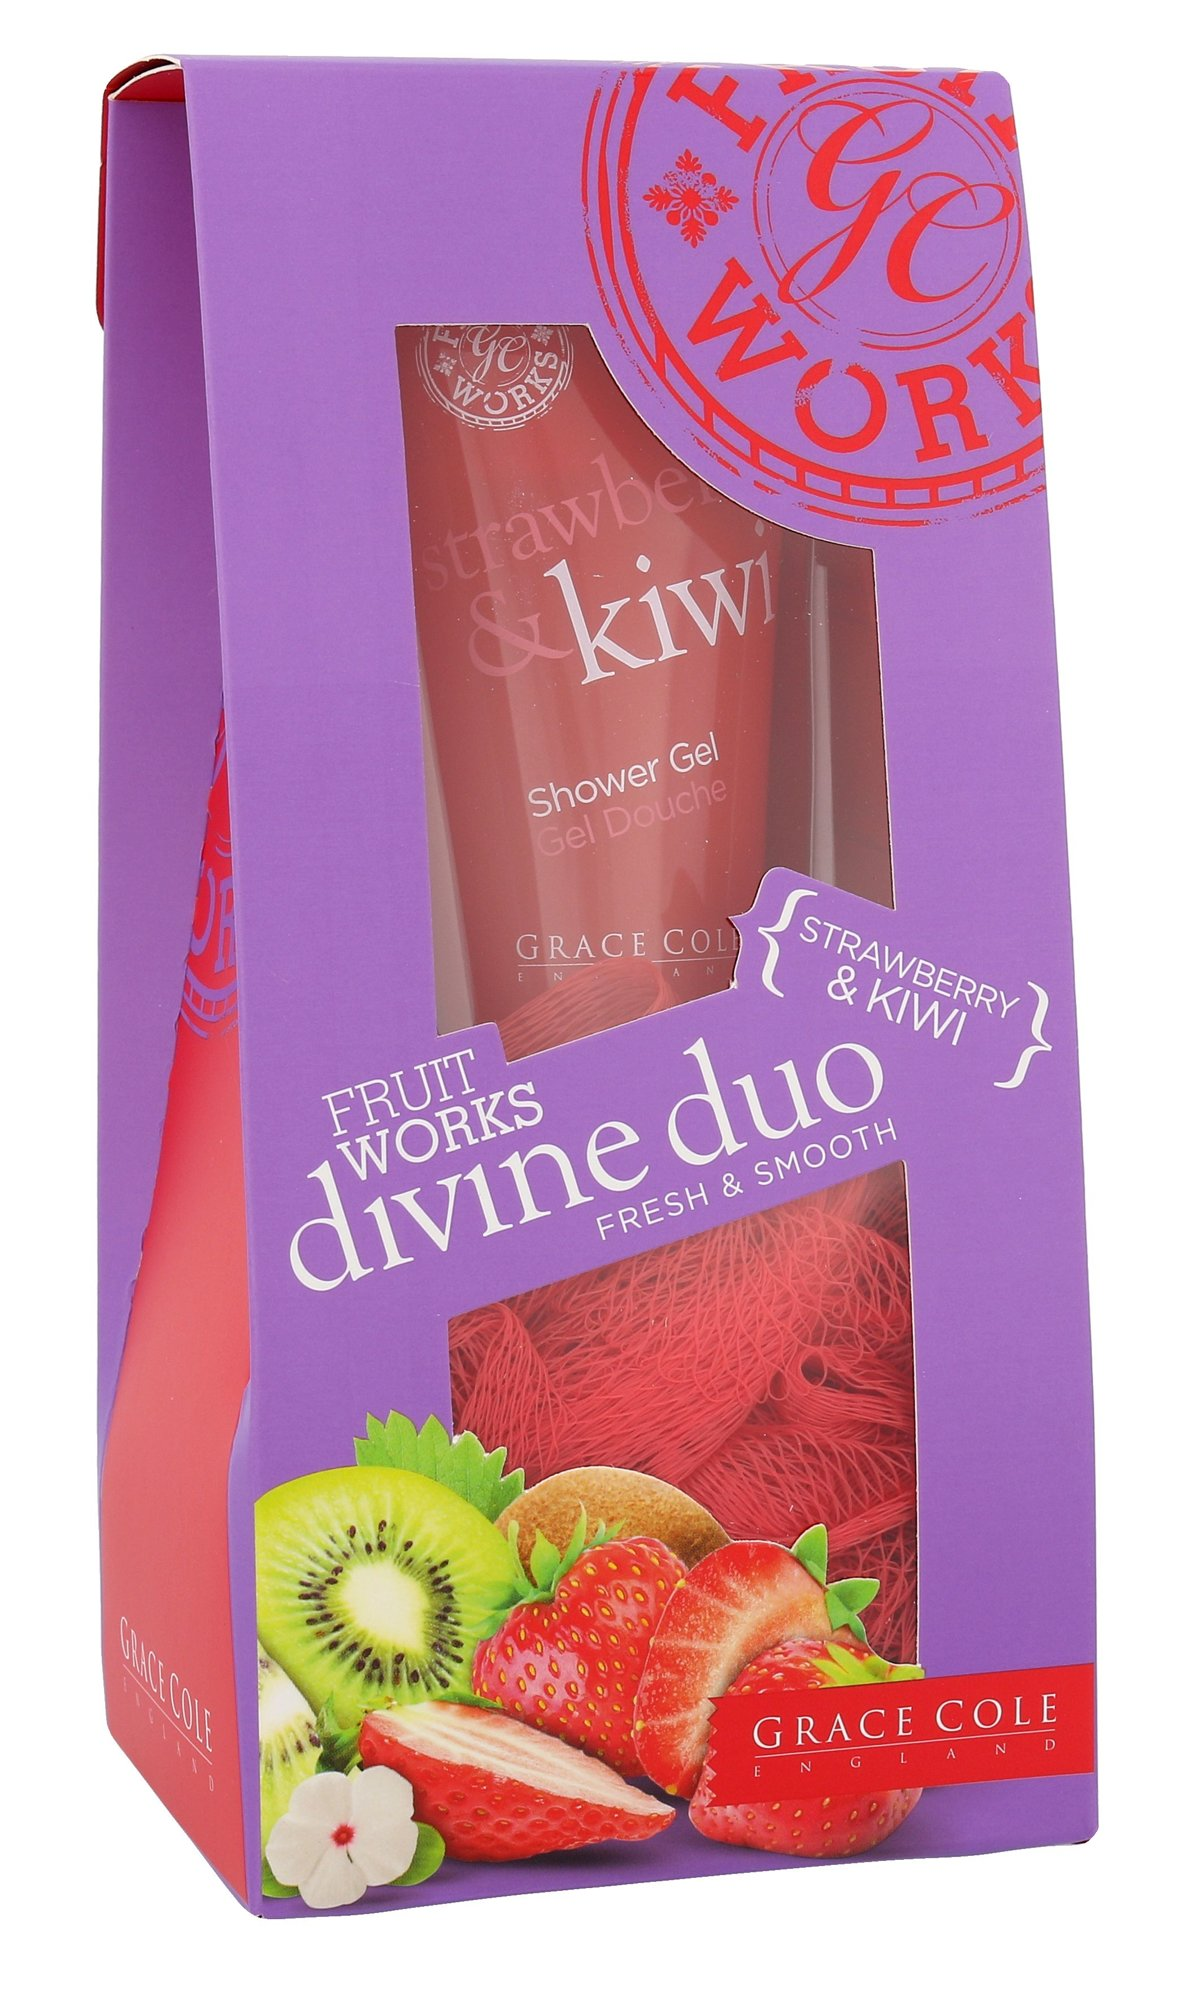 Grace Cole Fruit Works Divine Duo Kit Cosmetic 50ml